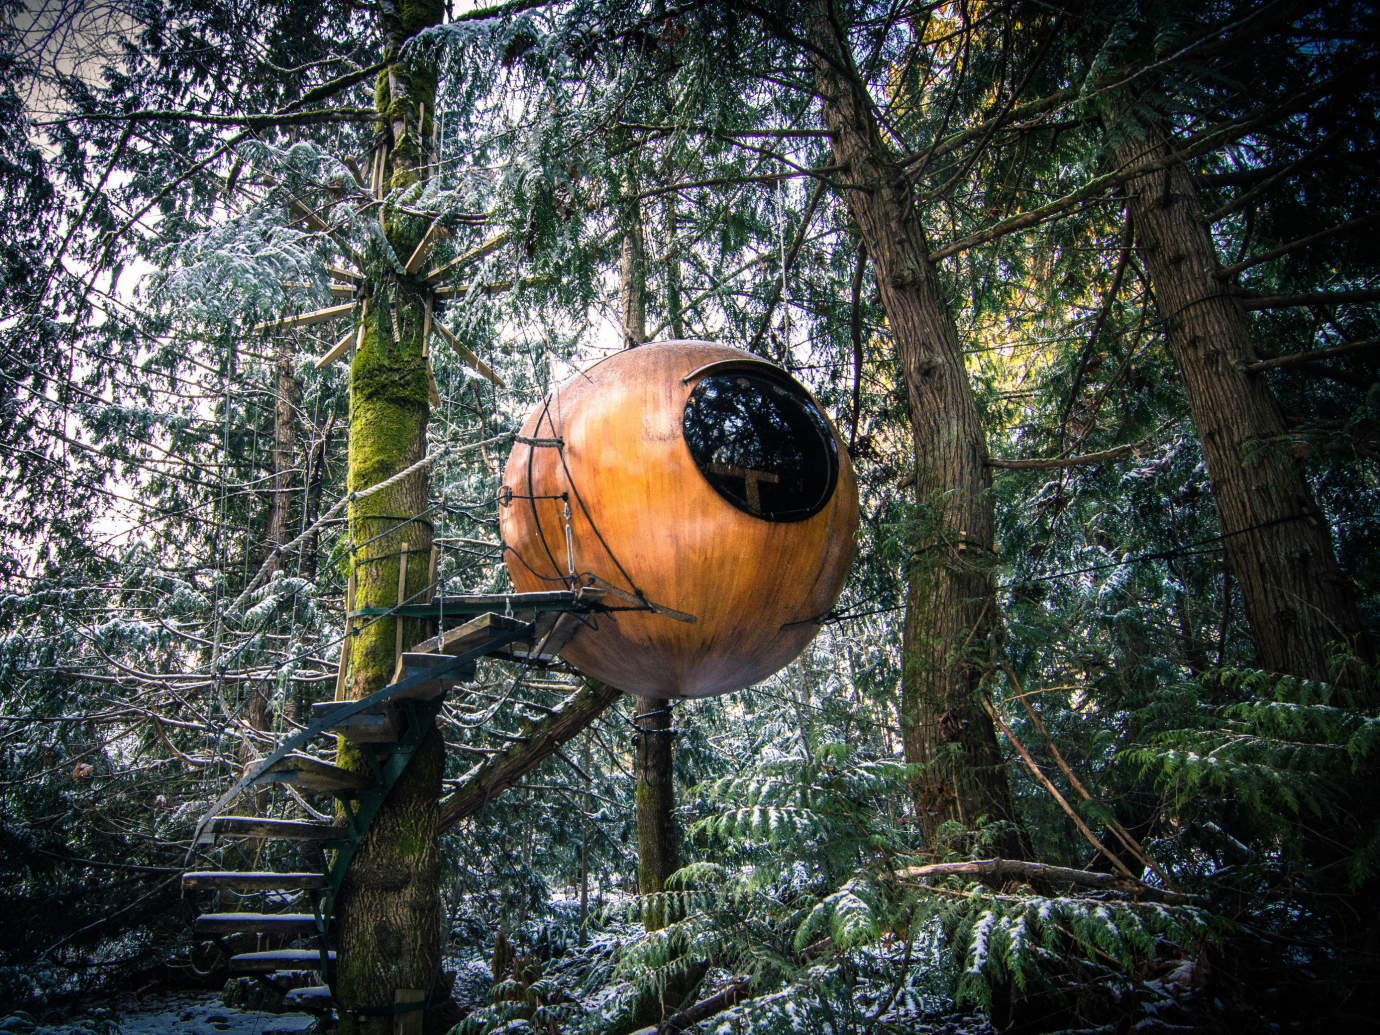 Sphere hotel room in the trees